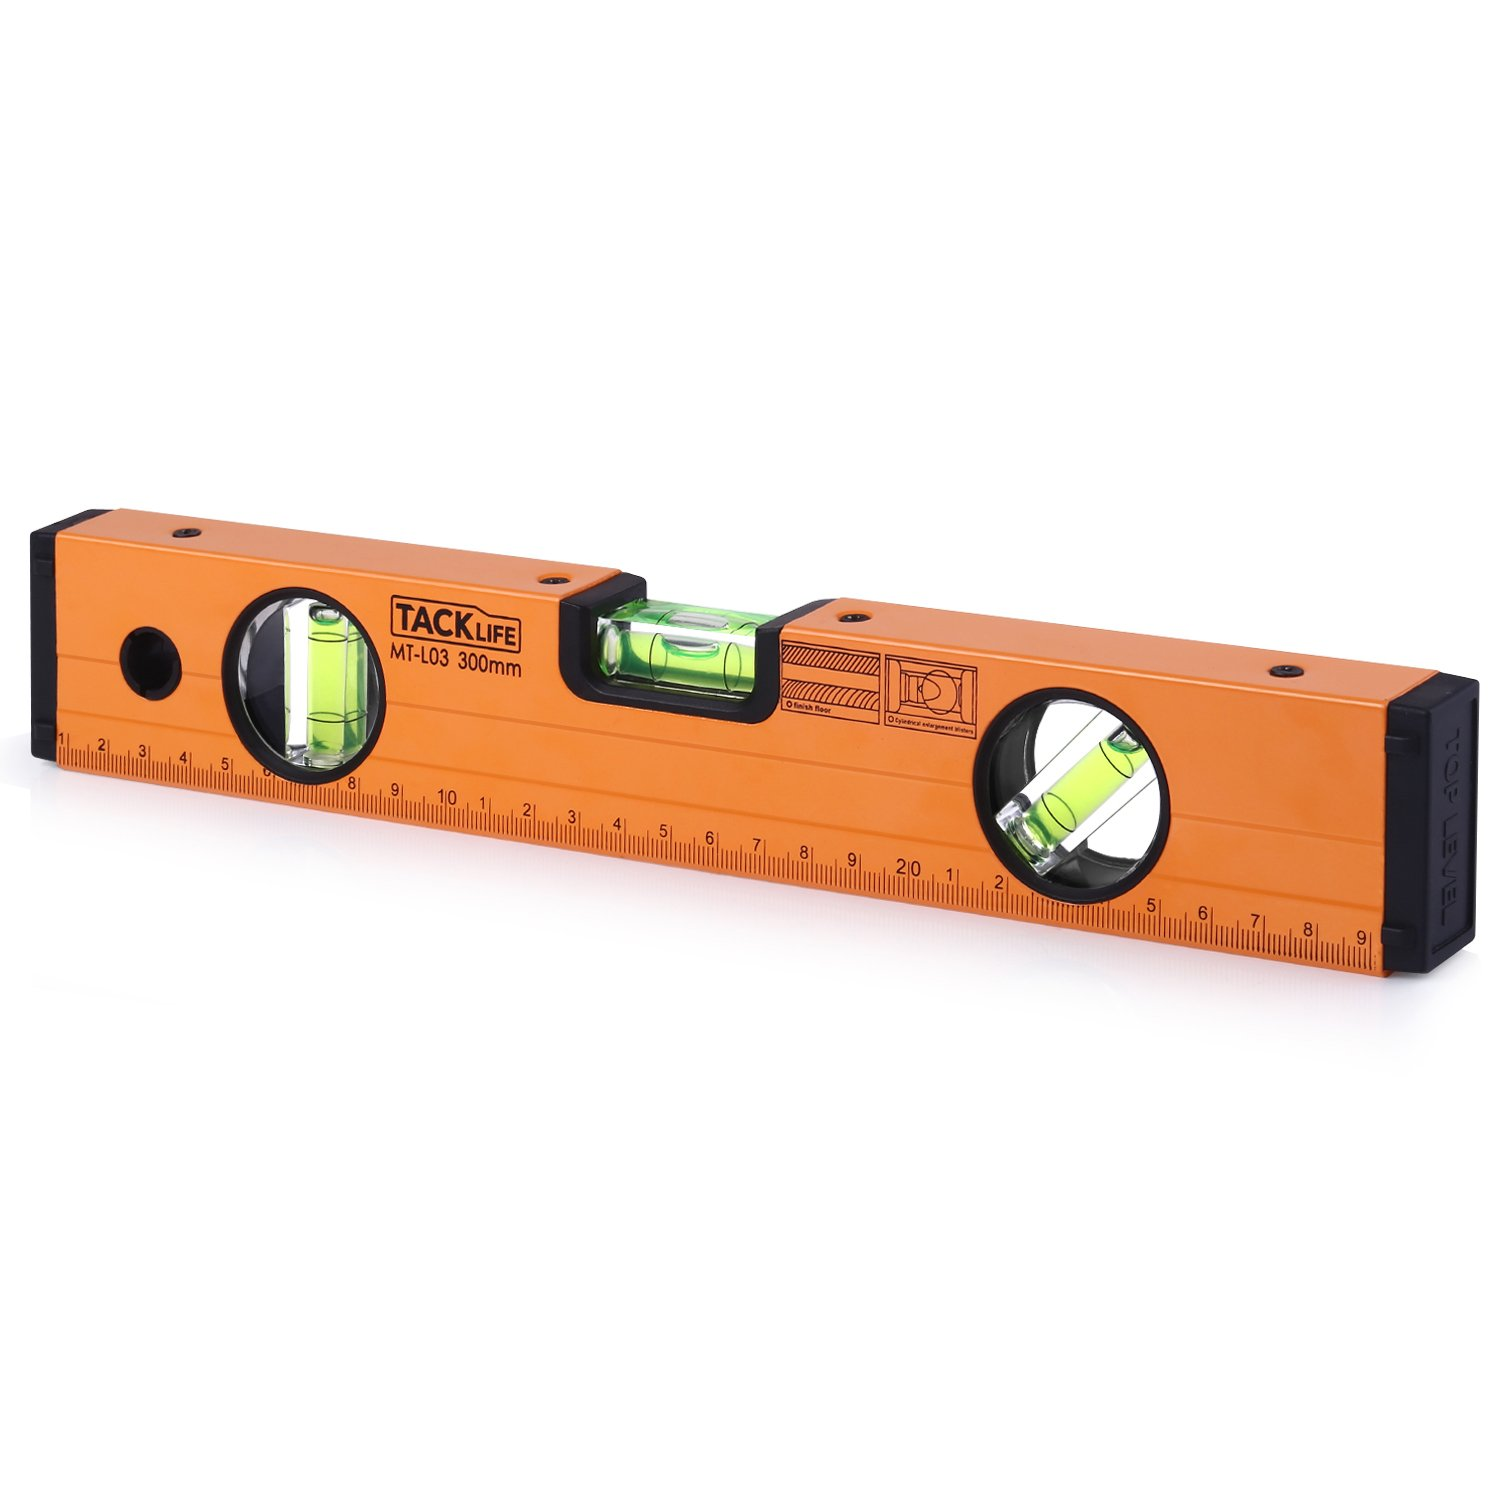 TACKLIFE MT-L03 12-Inch Level Aluminum Alloy Magnetic Torpedo Level Plumb/Level/45-Degree Measuring Shock Resistant Spirit Level with Standard and Metric Rulers by TACKLIFE